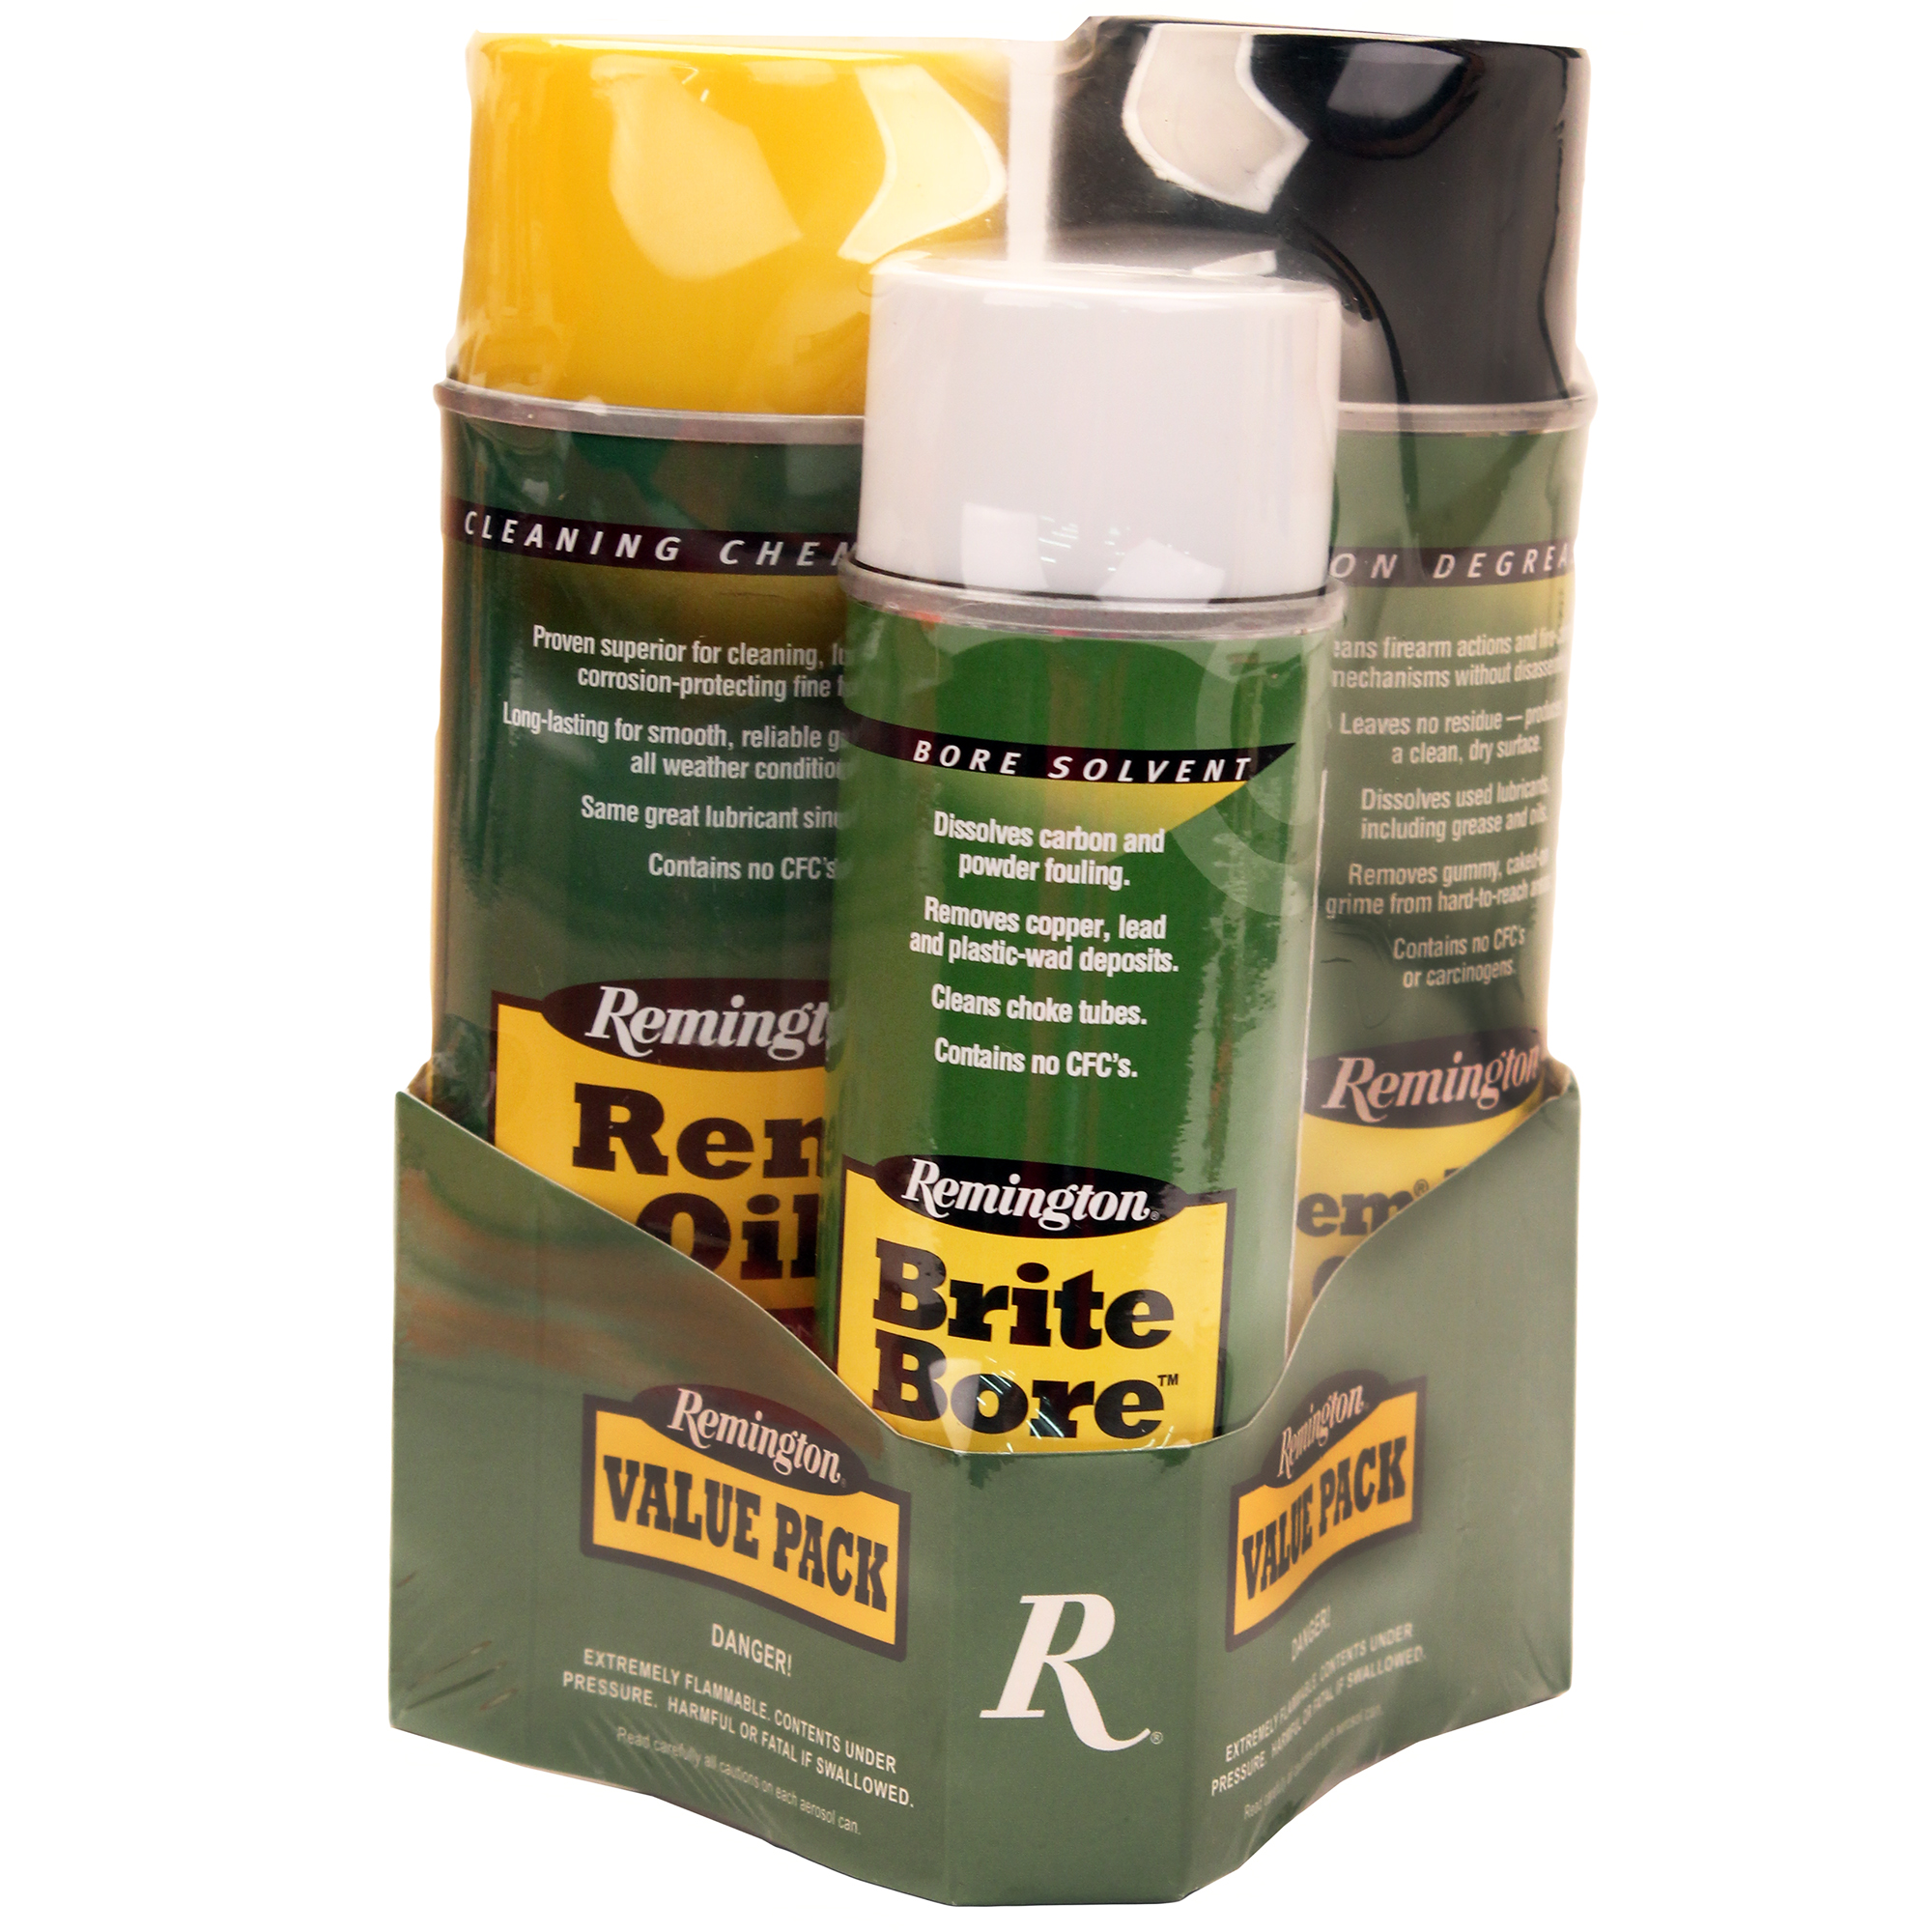 Rem Oil, Brite Bore, 10 oz. aerosols